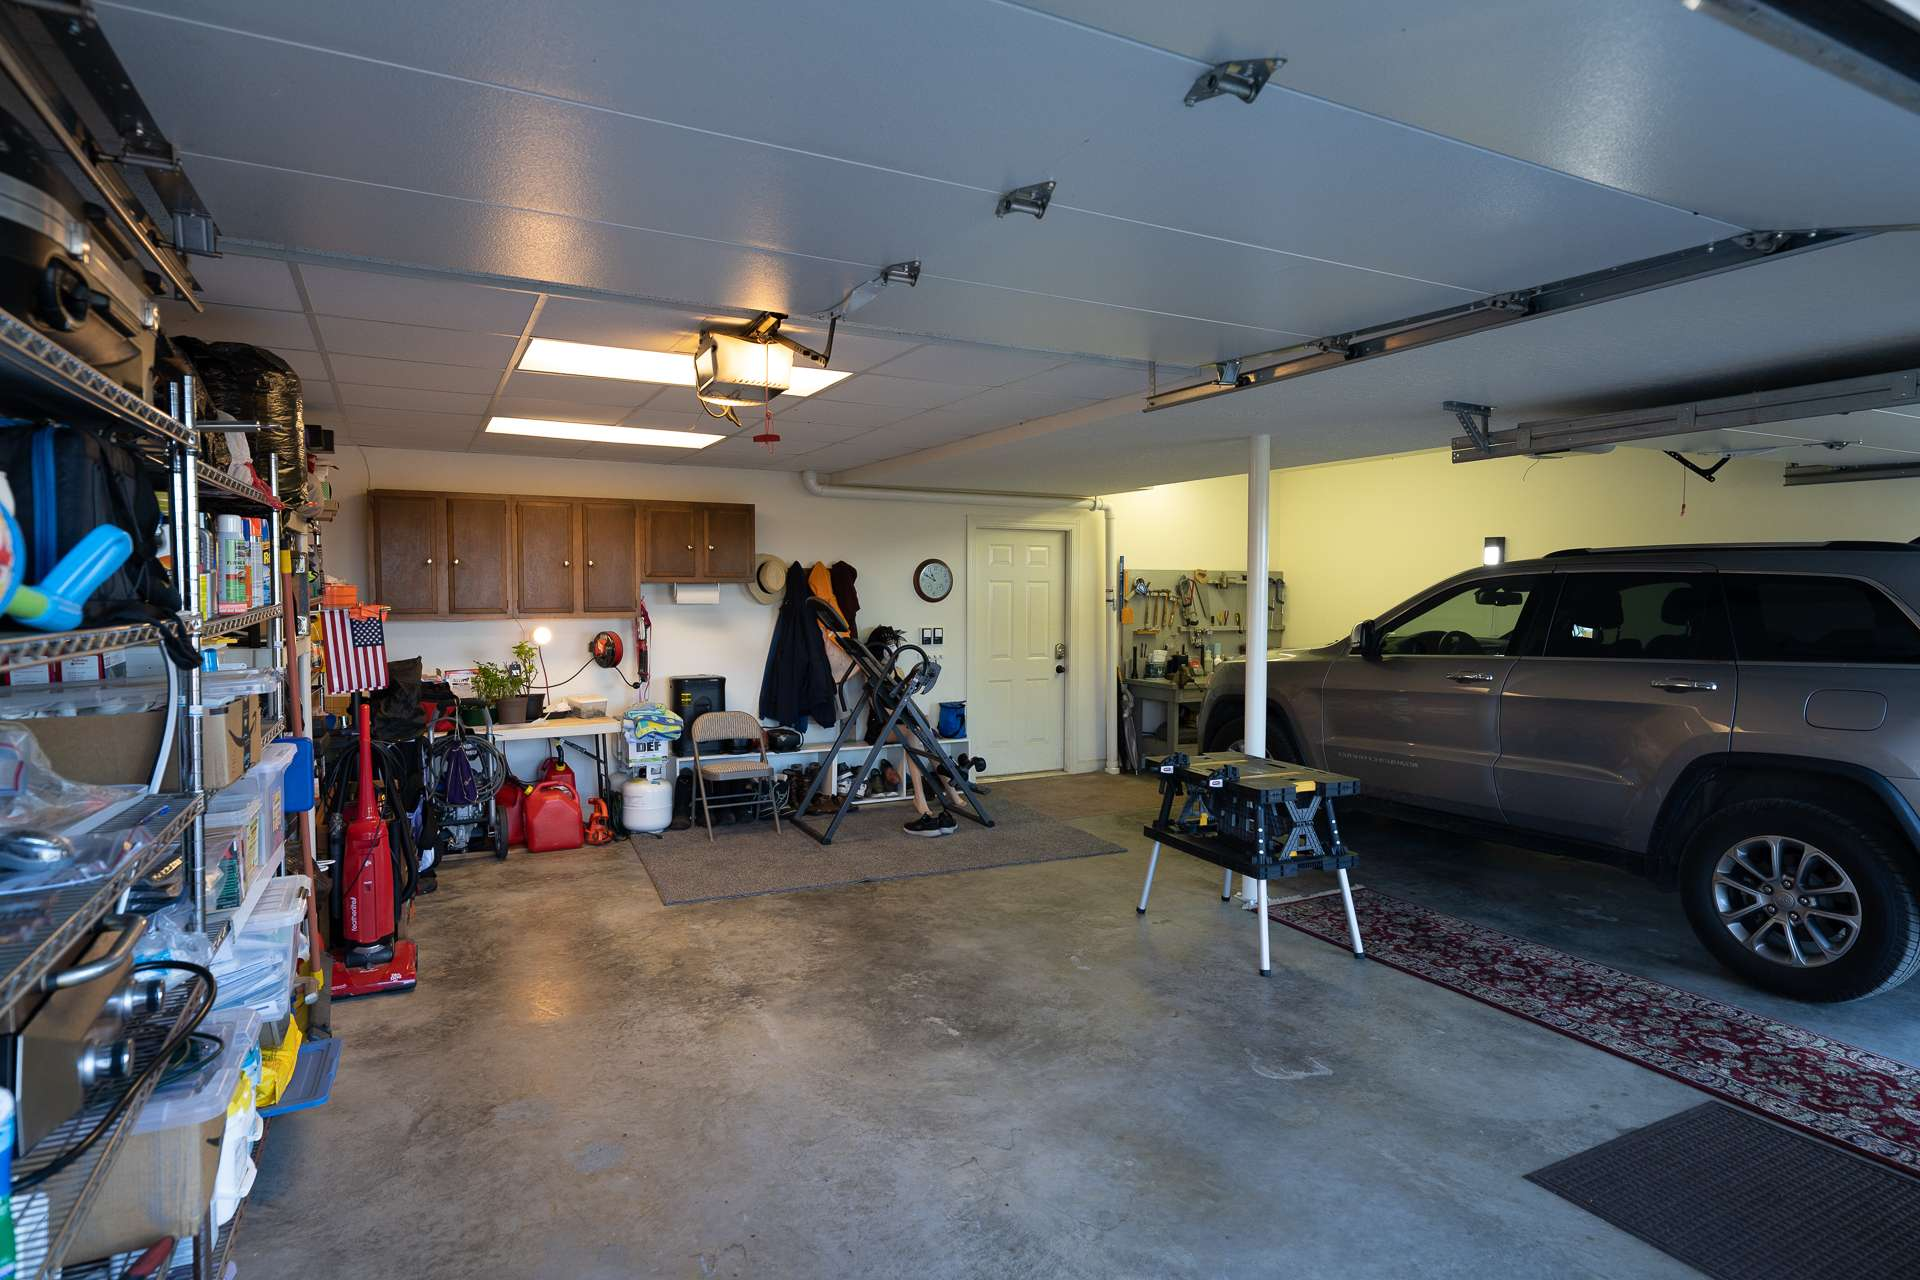 The remainder of the lower level is dedicated to the 2-car garage and storage space.